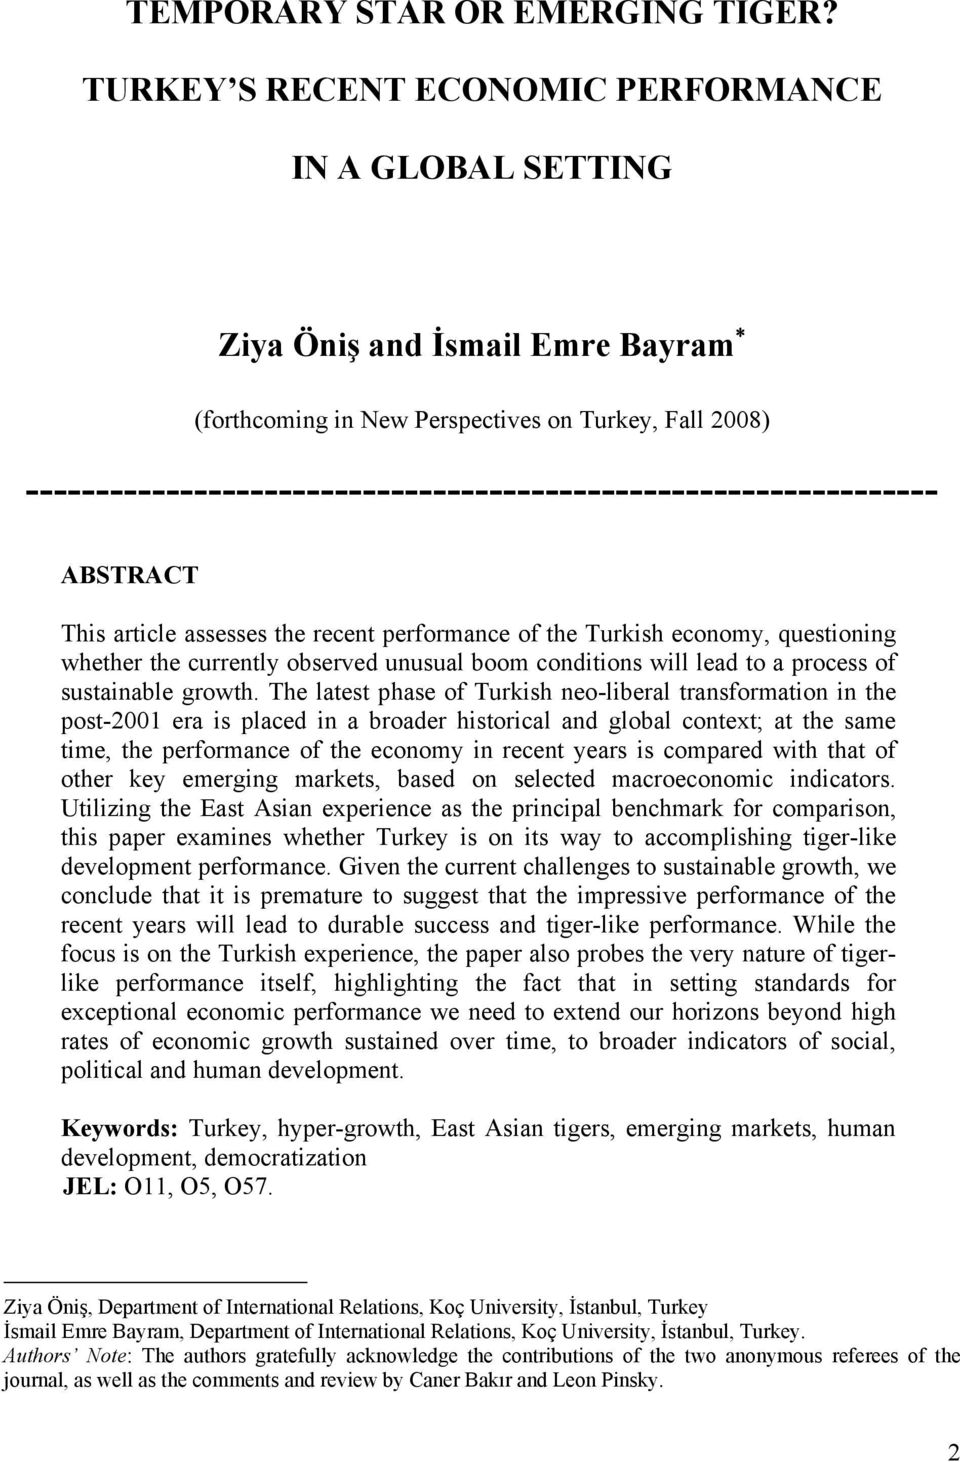 ----------------------------------------------------------------- ABSTRACT This article assesses the recent performance of the Turkish economy, questioning whether the currently observed unusual boom